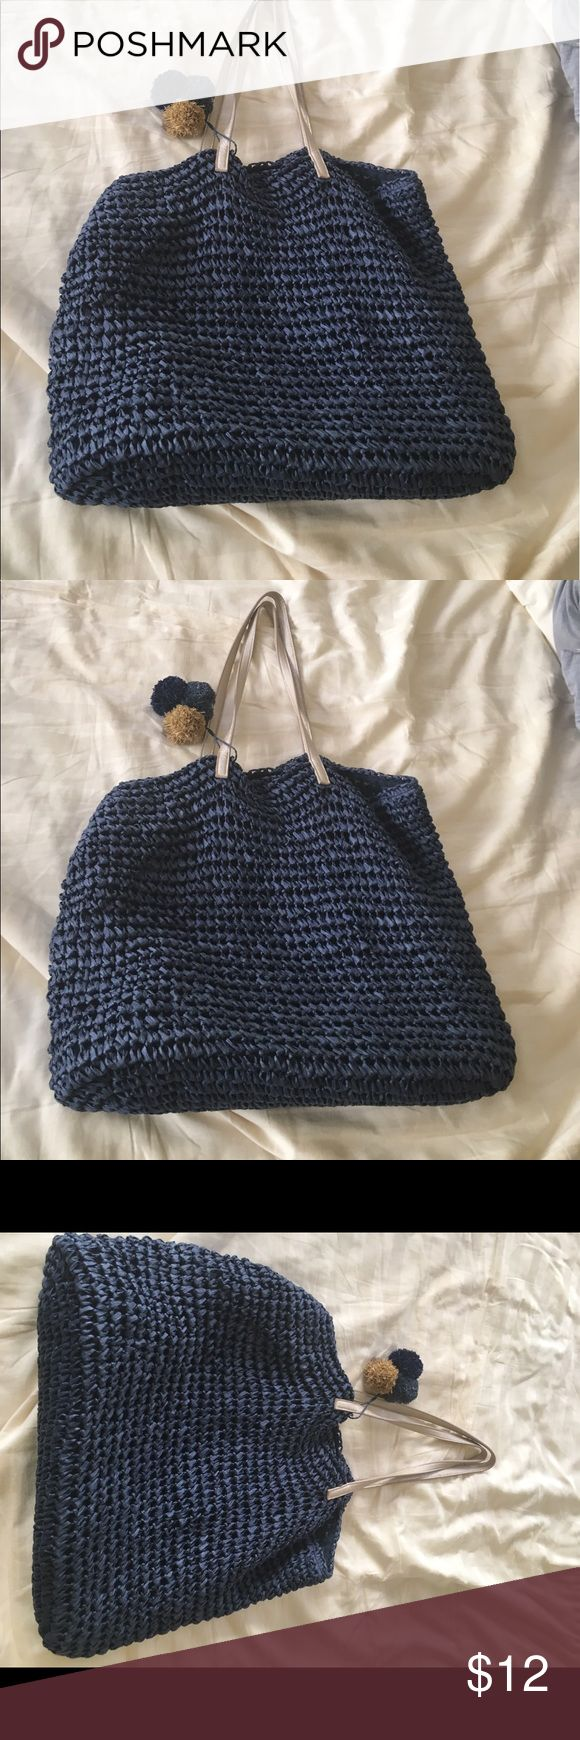 Beach bag Navy woven beach bag with tassels and silver handle - gently used paper/poly mix- inside perfect no stains no smell Bags Totes